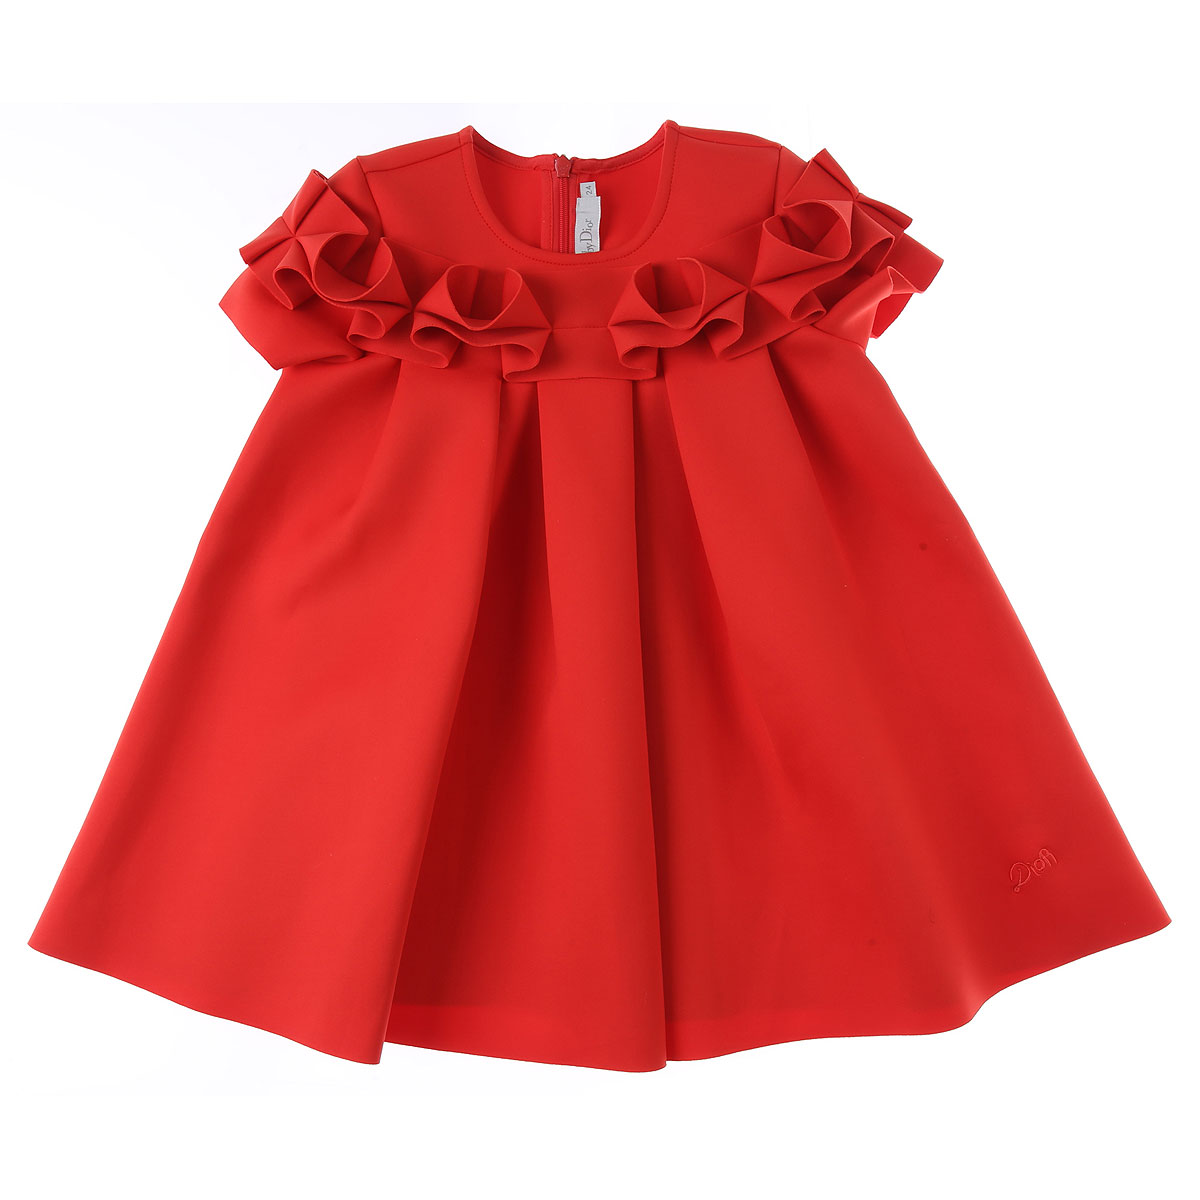 Baby Dior Baby Dress for Girls On Sale, Red, polyamide, 2019, 12M 18M 2Y 3Y